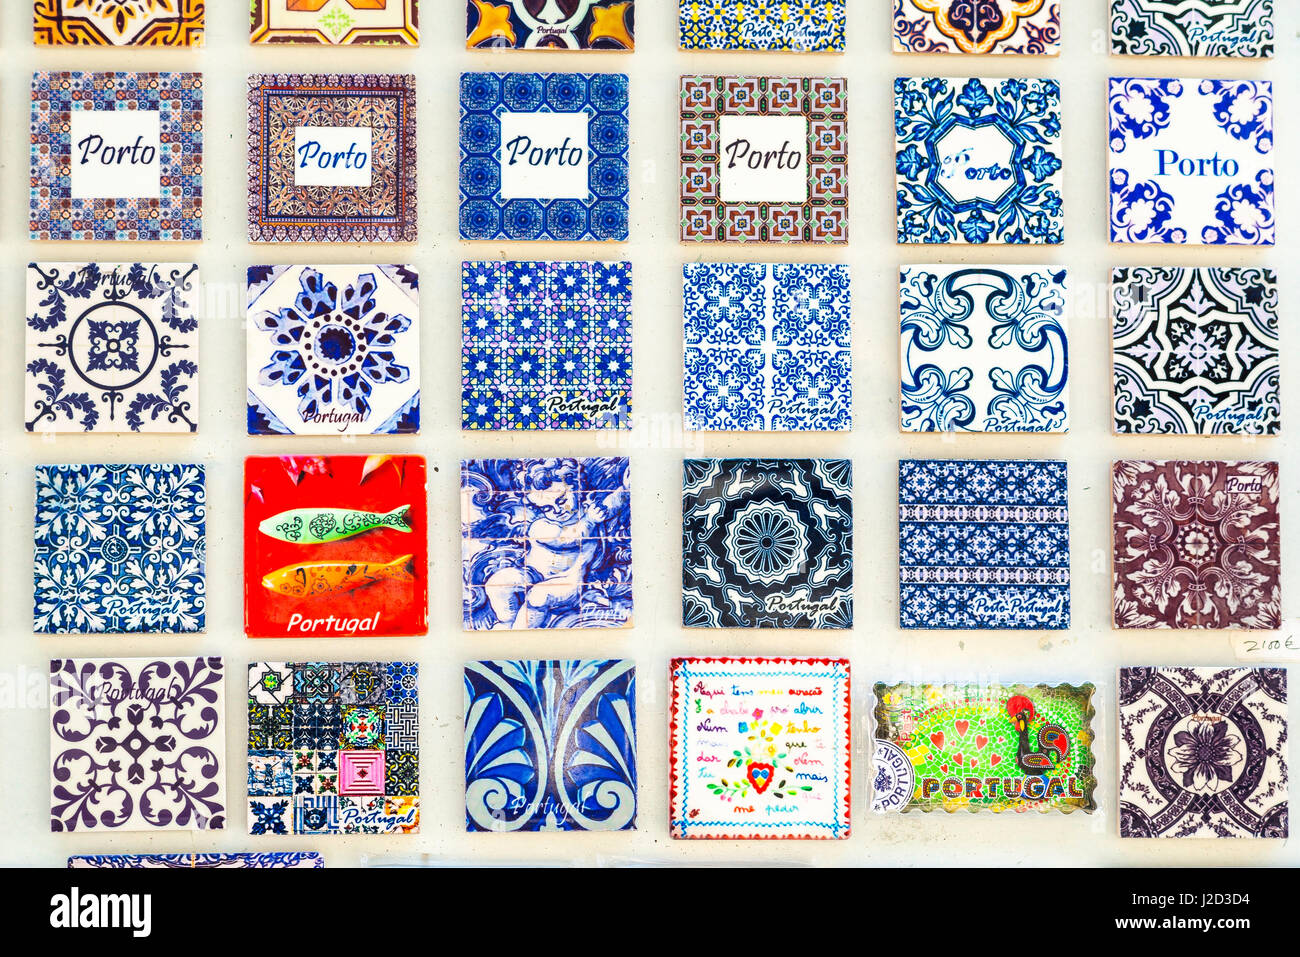 Tiles porto portugal a display of colourful ceramic tiles sold as tiles porto portugal a display of colourful ceramic tiles sold as tourist souvenirs of the city europe dailygadgetfo Choice Image